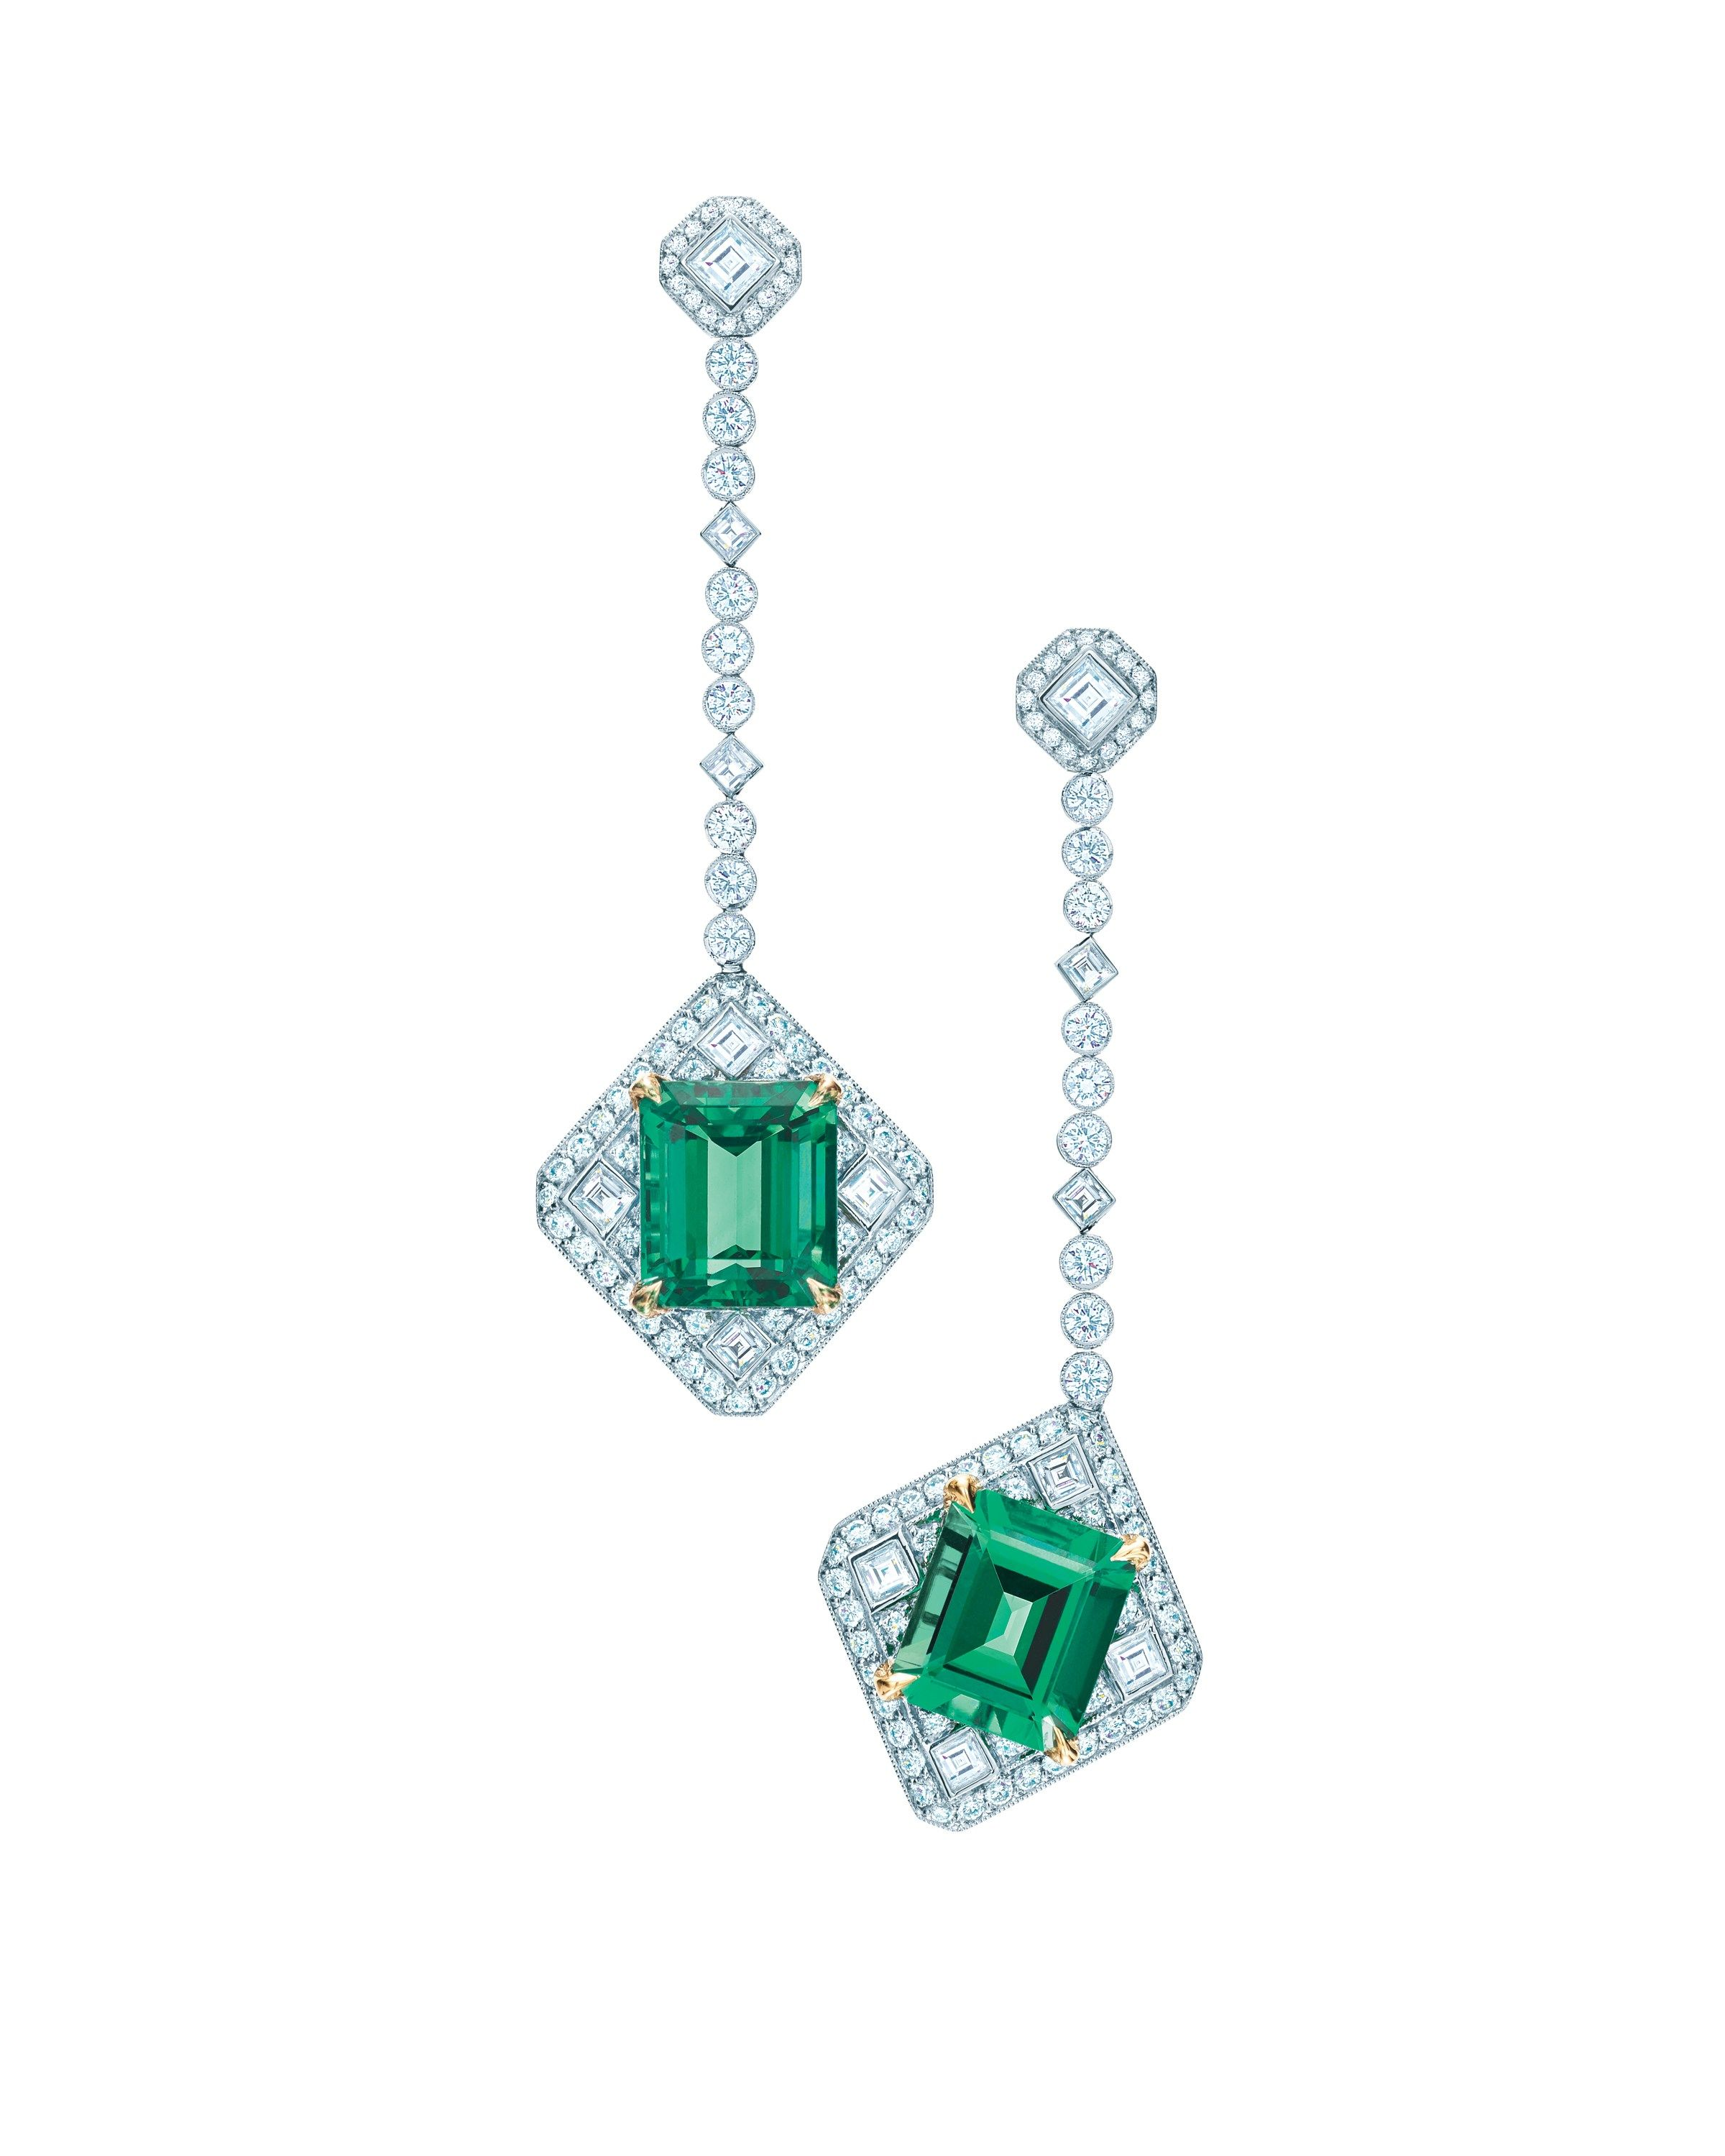 christie christies nyr earrings online s emerald tiffany jewels and co diamond